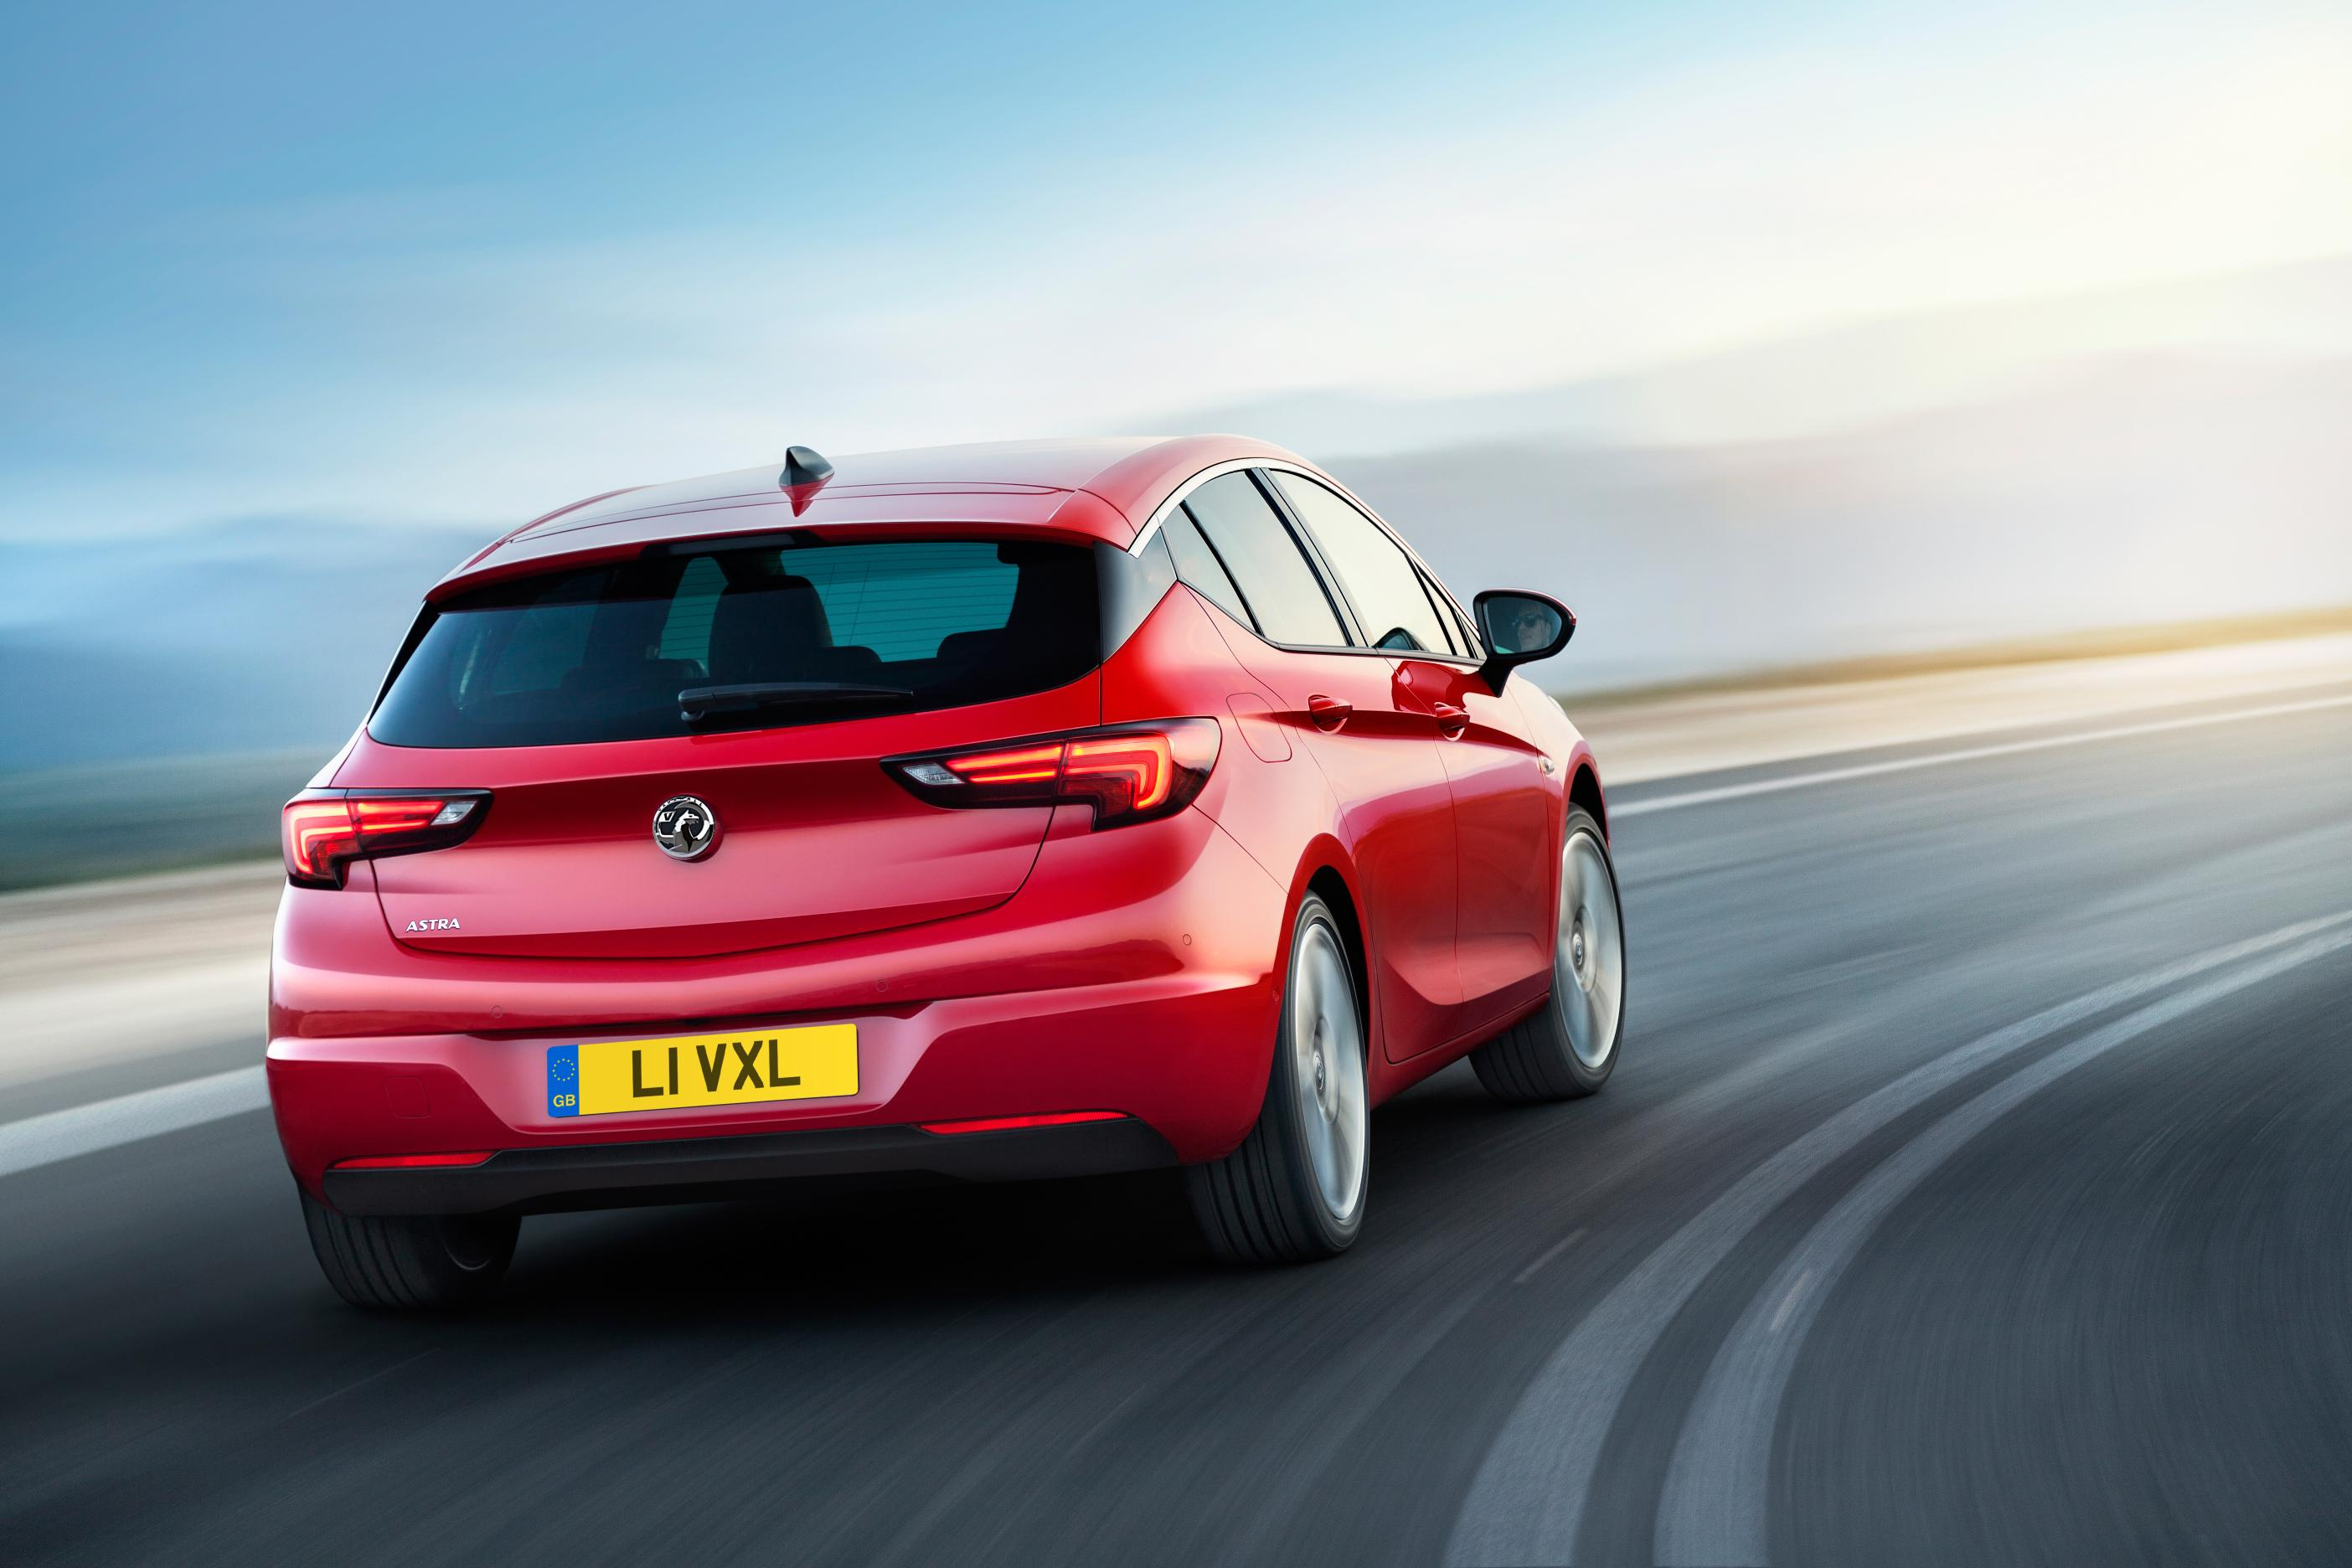 2015 Opel Astra Price: €17,960 for the 1-liter ECOTEC